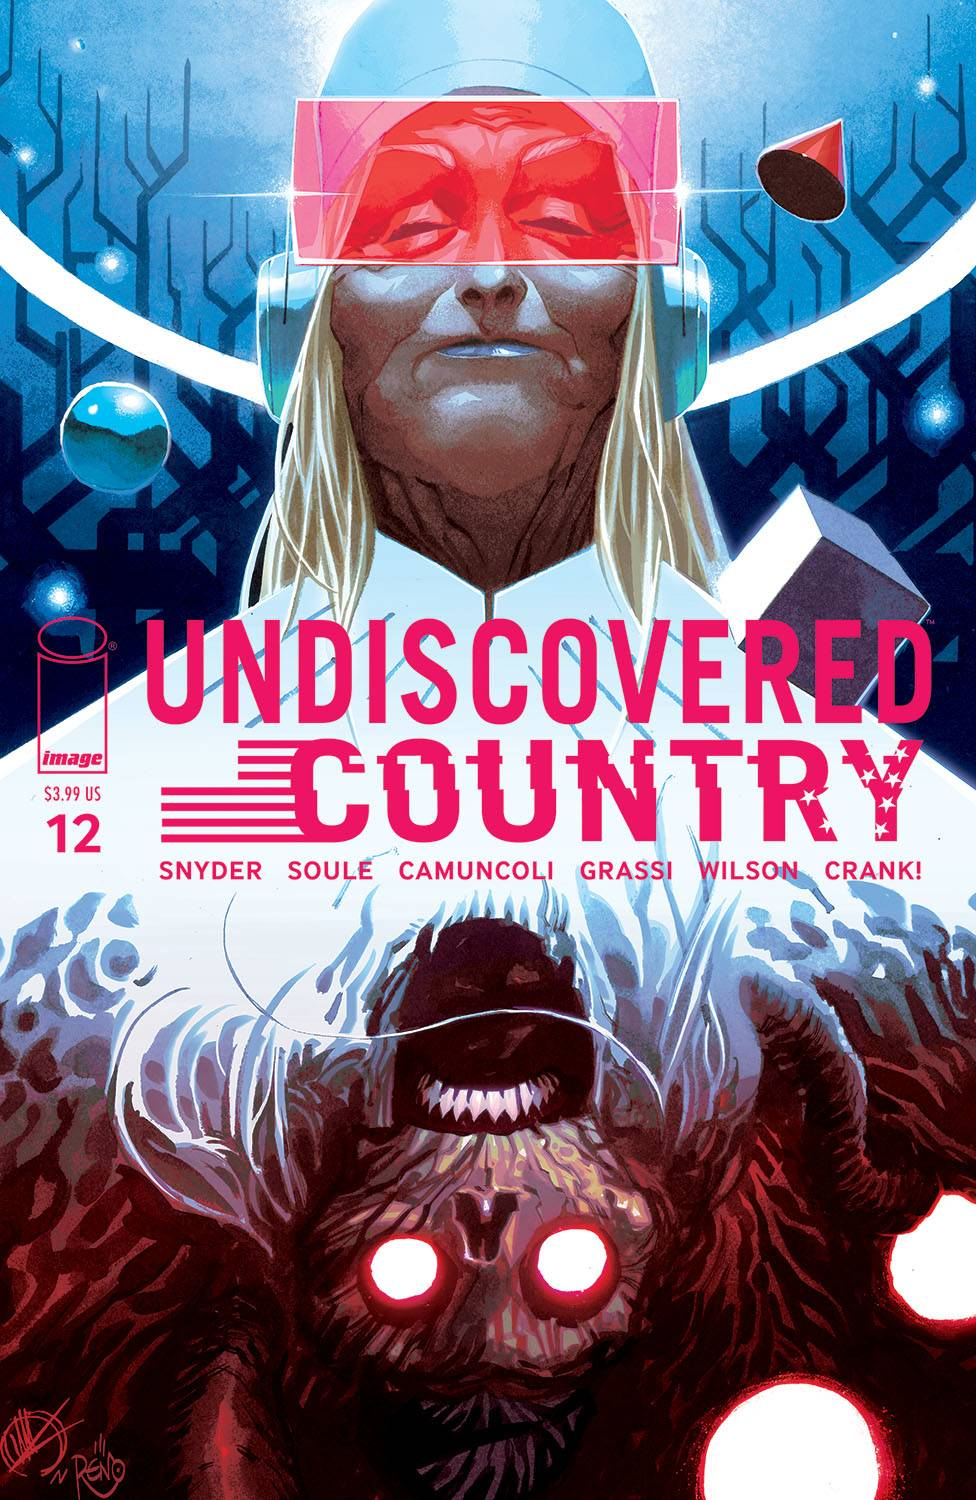 UNDISCOVERED COUNTRY #12 CVR B SCALERA (O/A) (MR)